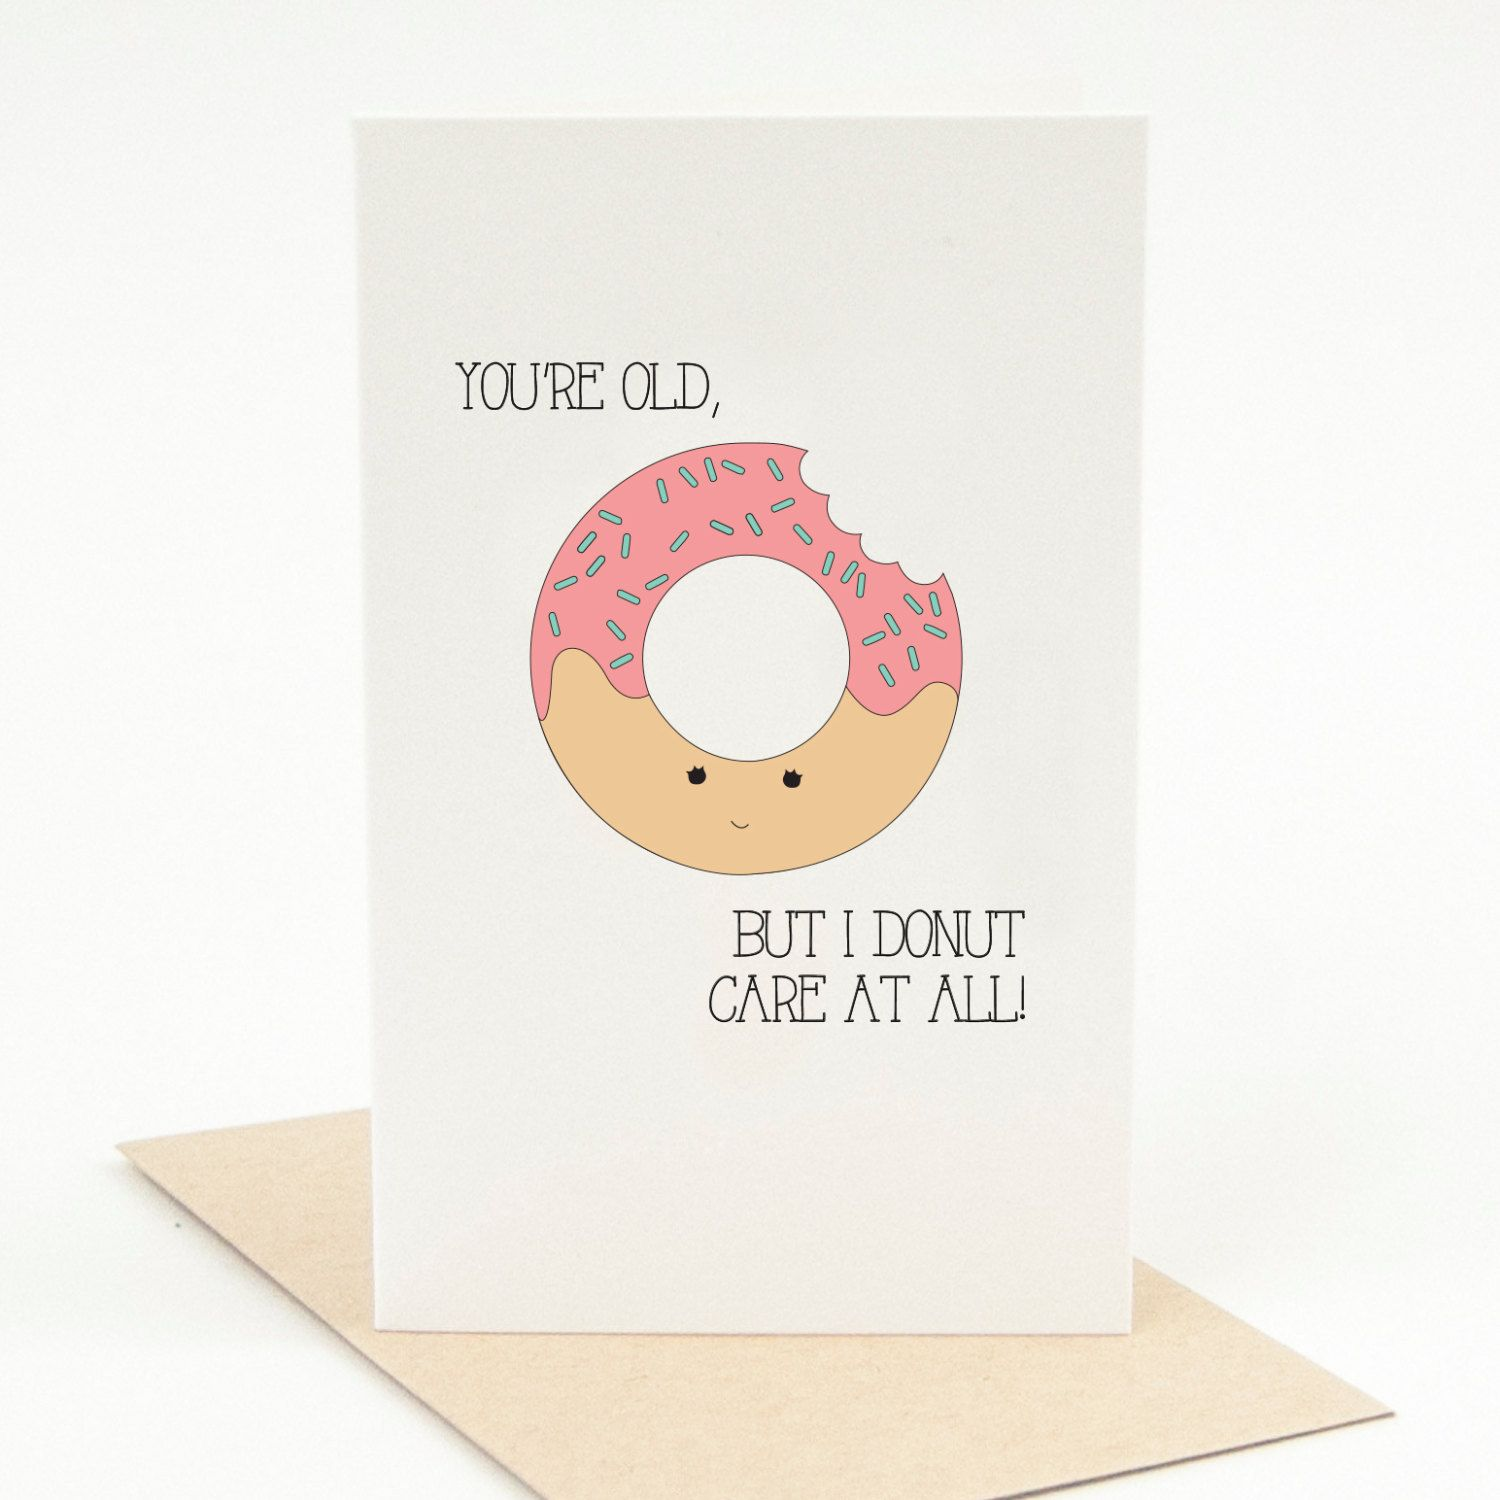 printable birthday card you're old i donut care at all funny pun